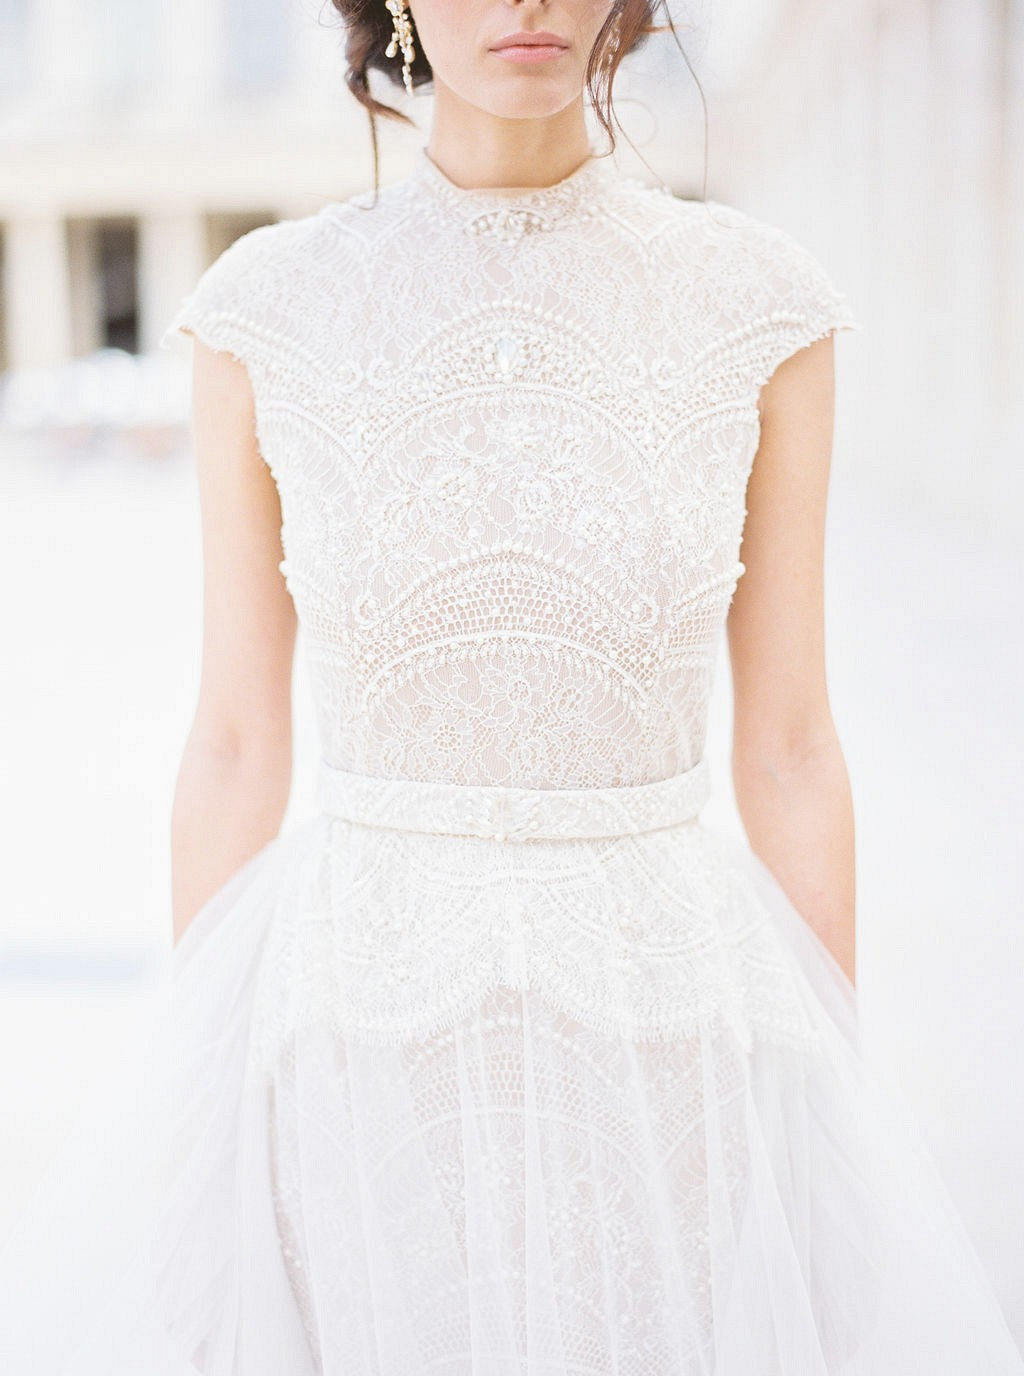 Paris Obsessed Brides Need to See This Editorial